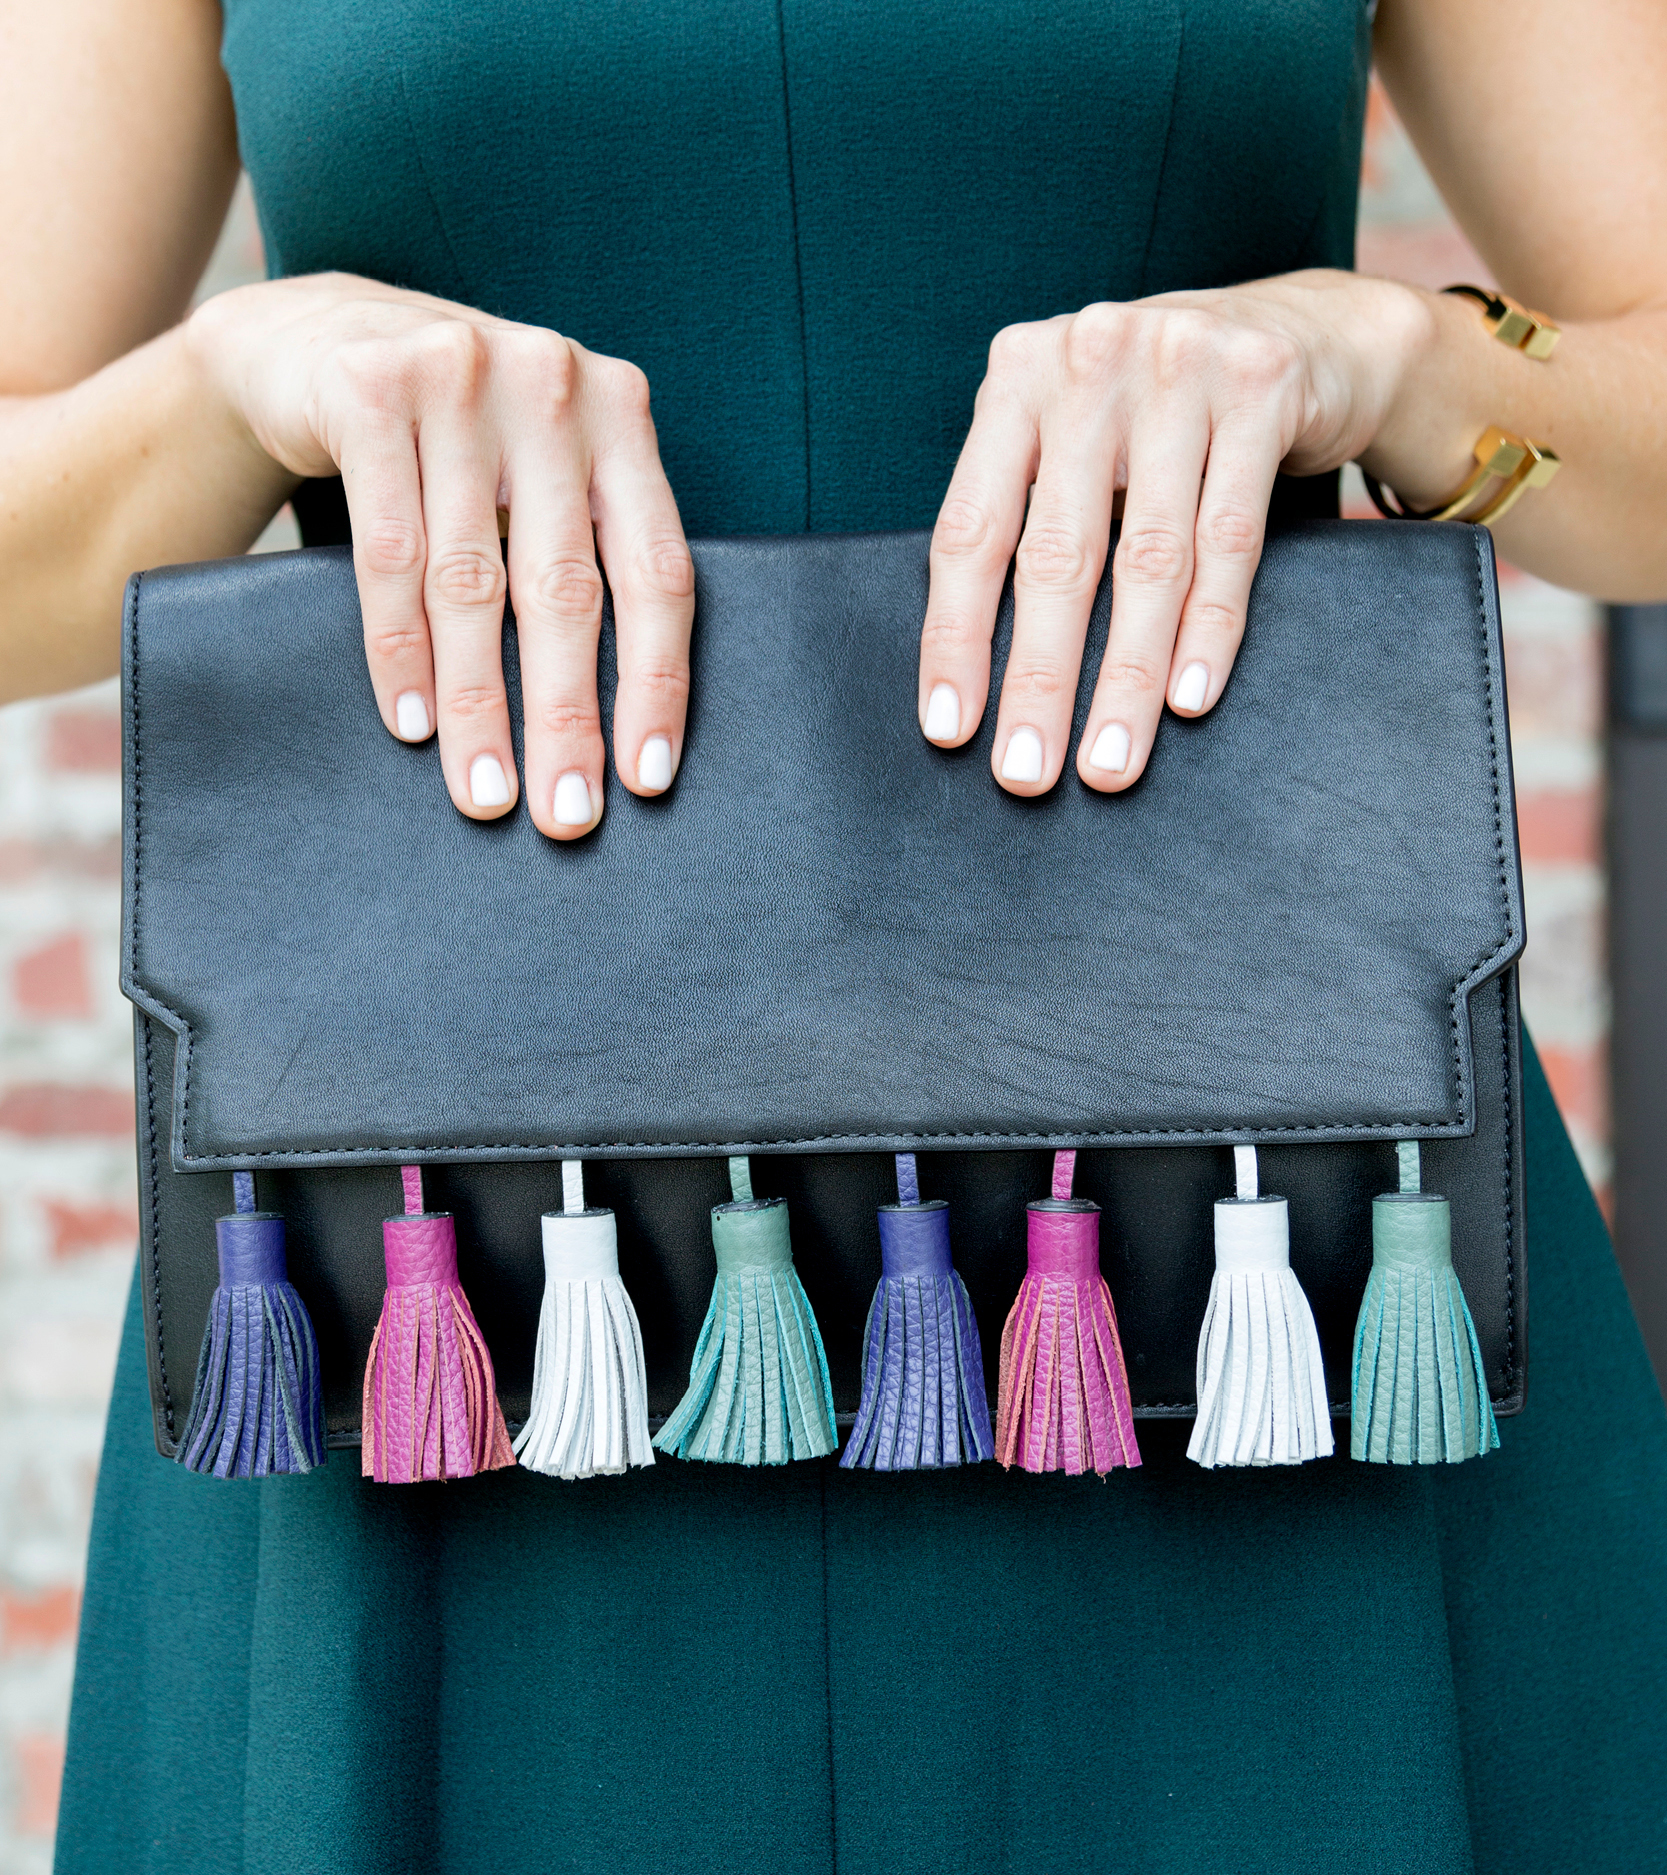 tanger outlets saks off fifth black and colored tasseled clutch